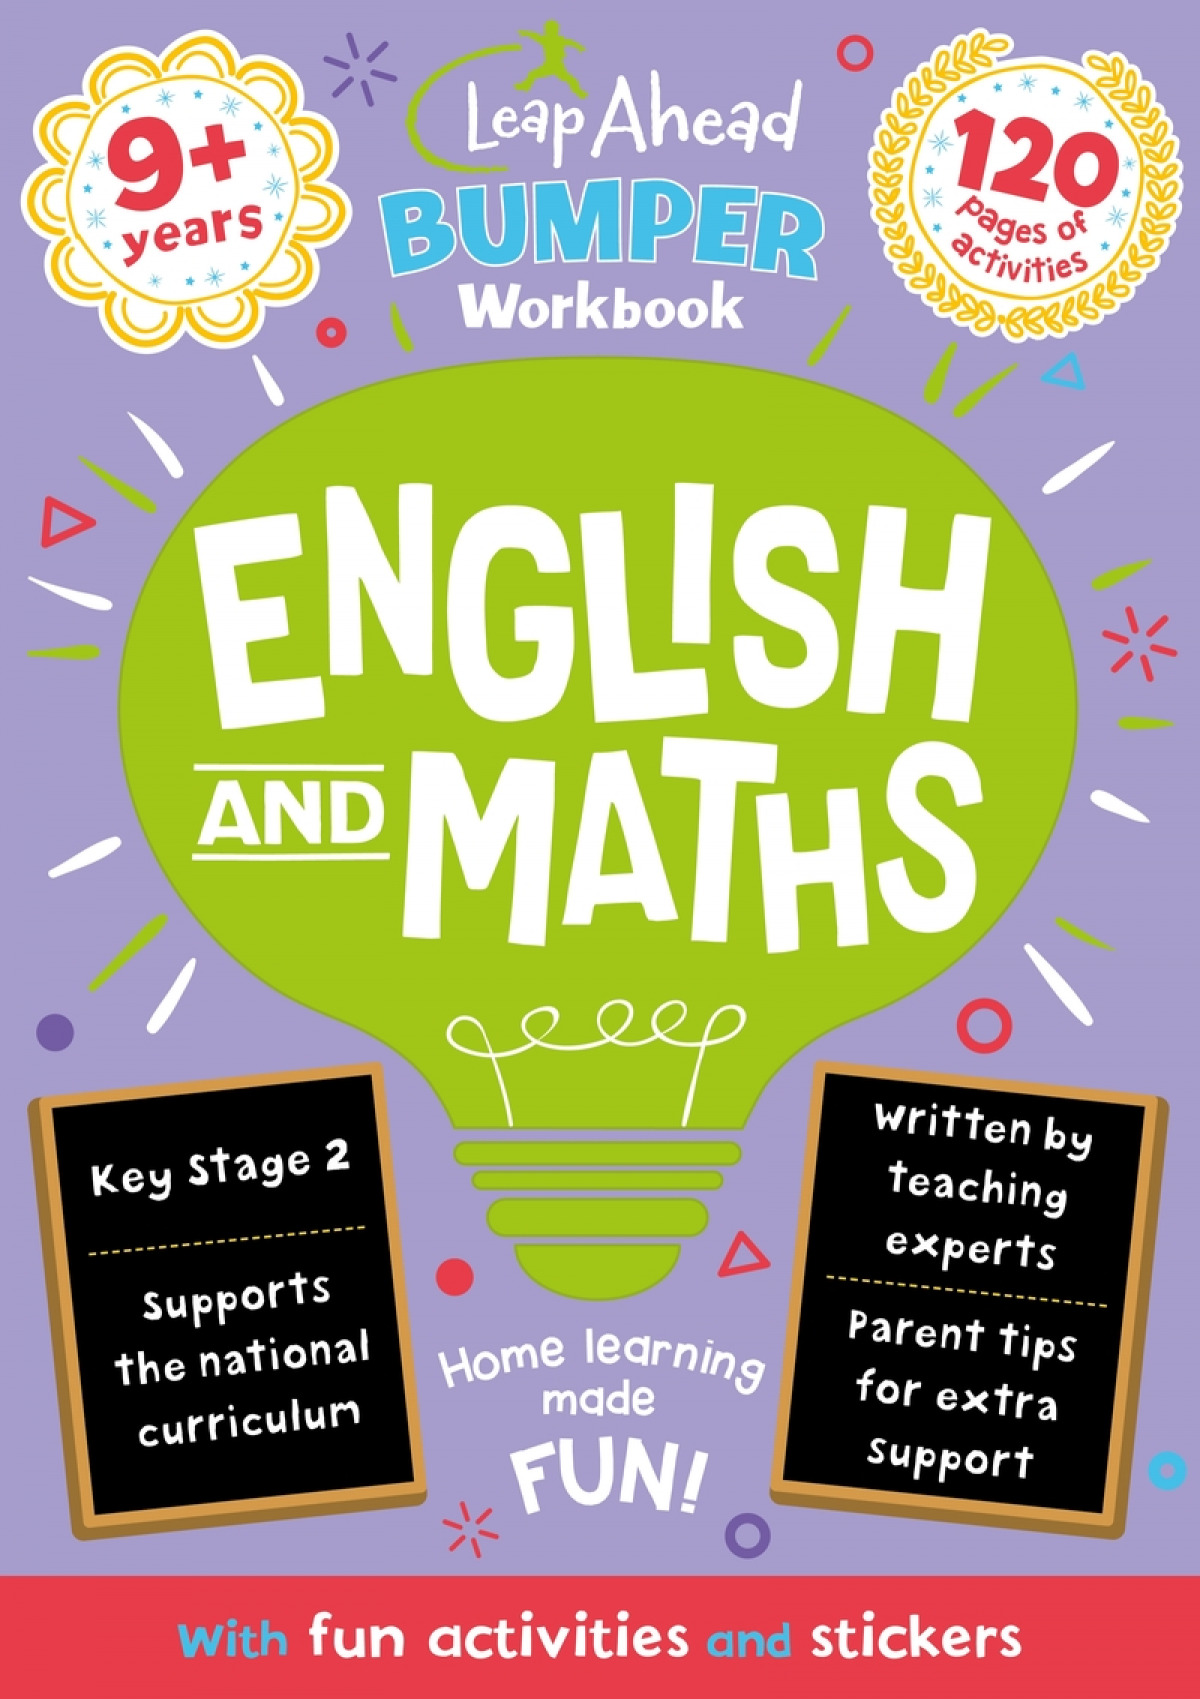 Leap Ahead Bumper Workbook: 9+ Years English and Maths